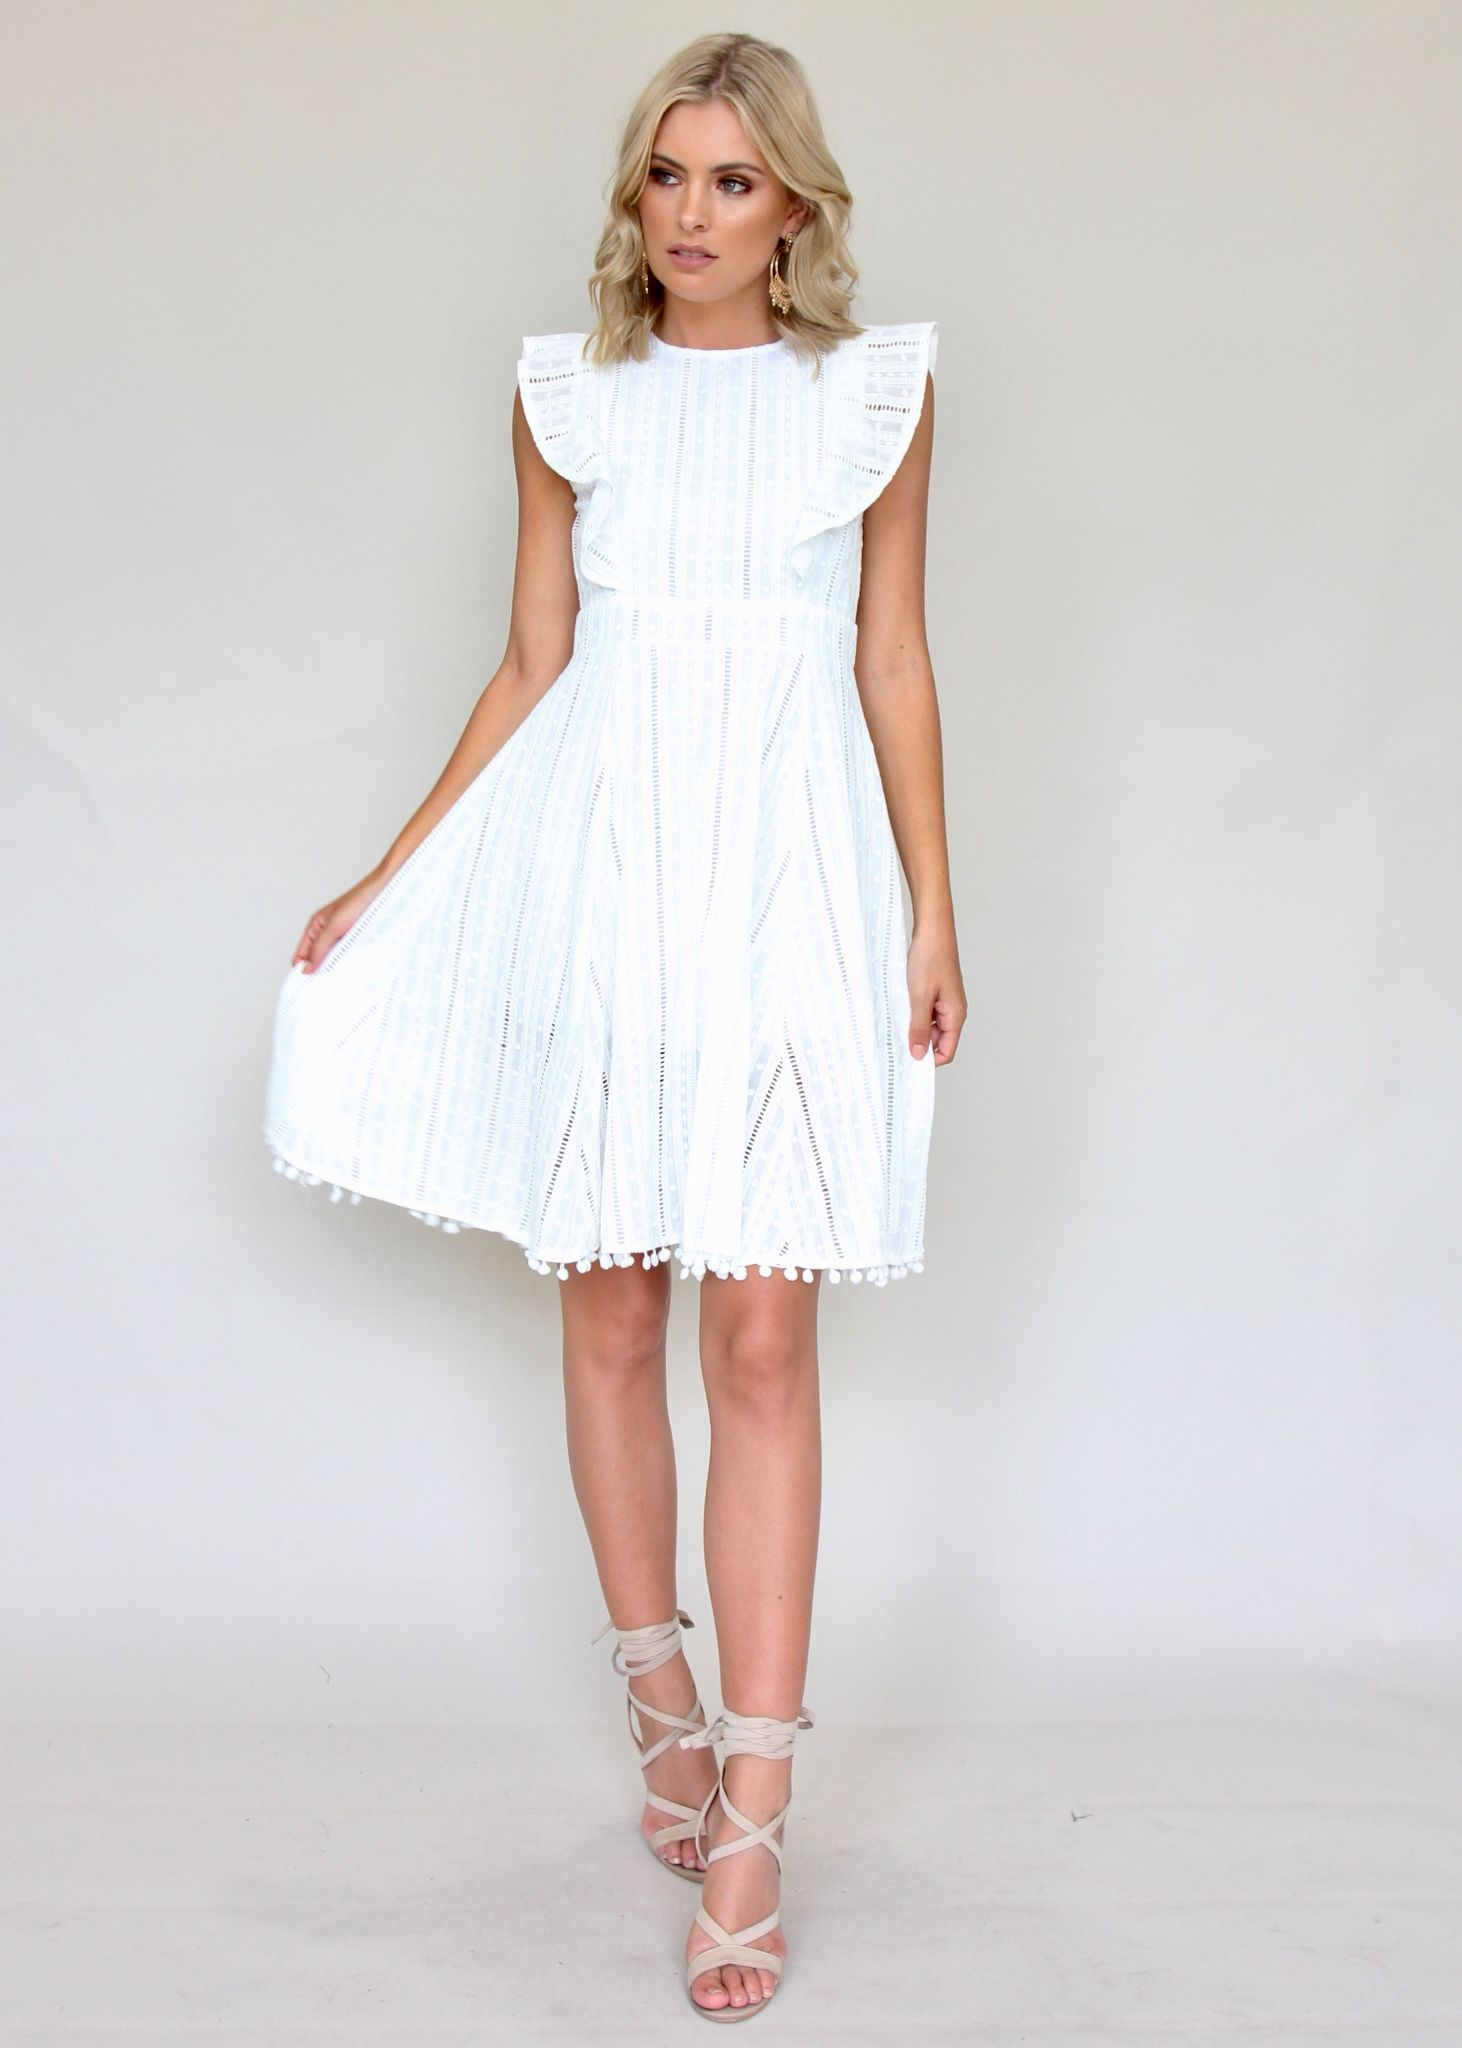 Talk About It Midi Dress - White